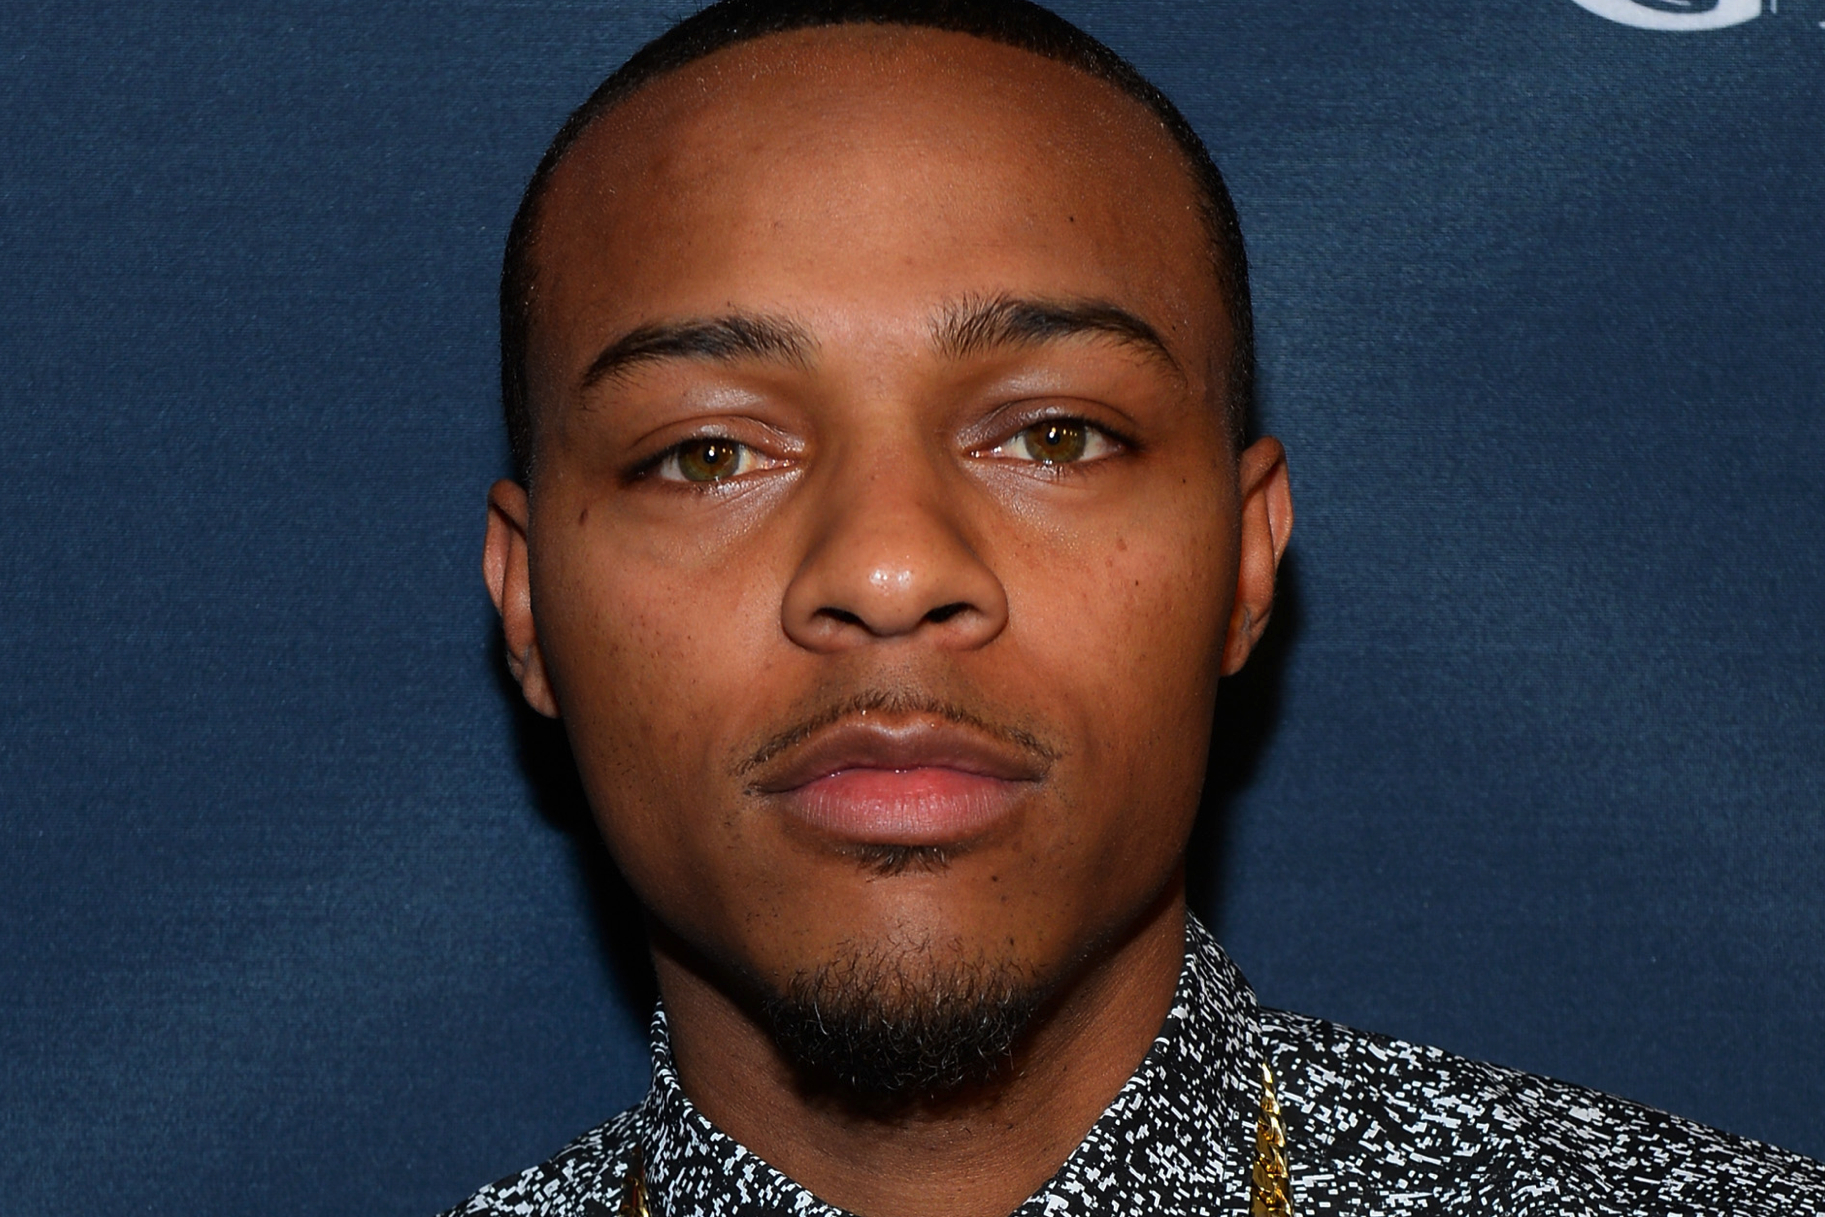 http://www.oxygen.com/sites/nbcuoxygen/files/field_blog_image/2016/07/bow-wow.jpg